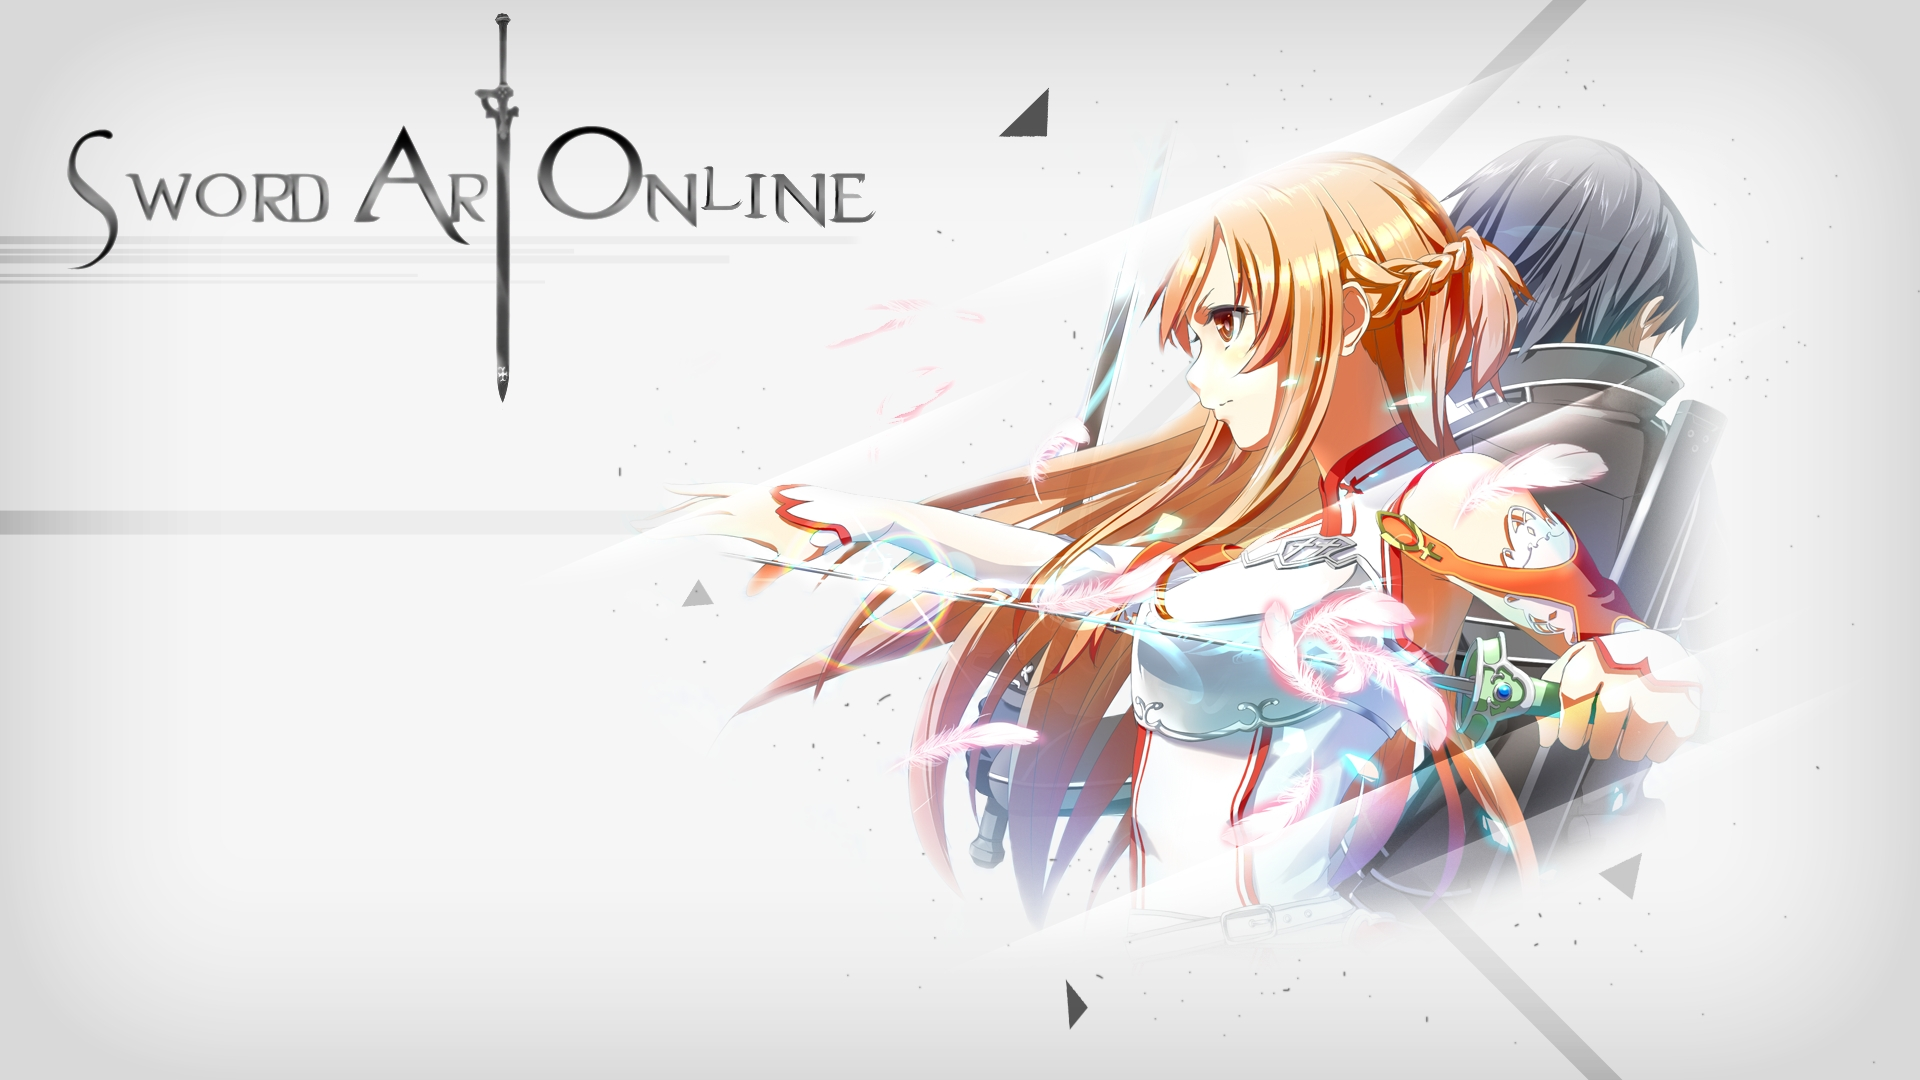 Sword Art Online Wallpaper 4. Icm School Of Business Cheapest Hotels Vienna. Exterminator Chapel Hill Nc 21 Com Insurance. Online Counseling Psychology Degree. Current Va Loan Rates Wells Fargo. Free Online Psychic Readings No Credit Card Required. Garage Door Repair Arcadia Ca. Software Testing Companies In Hyderabad. Average Annual Total Returns